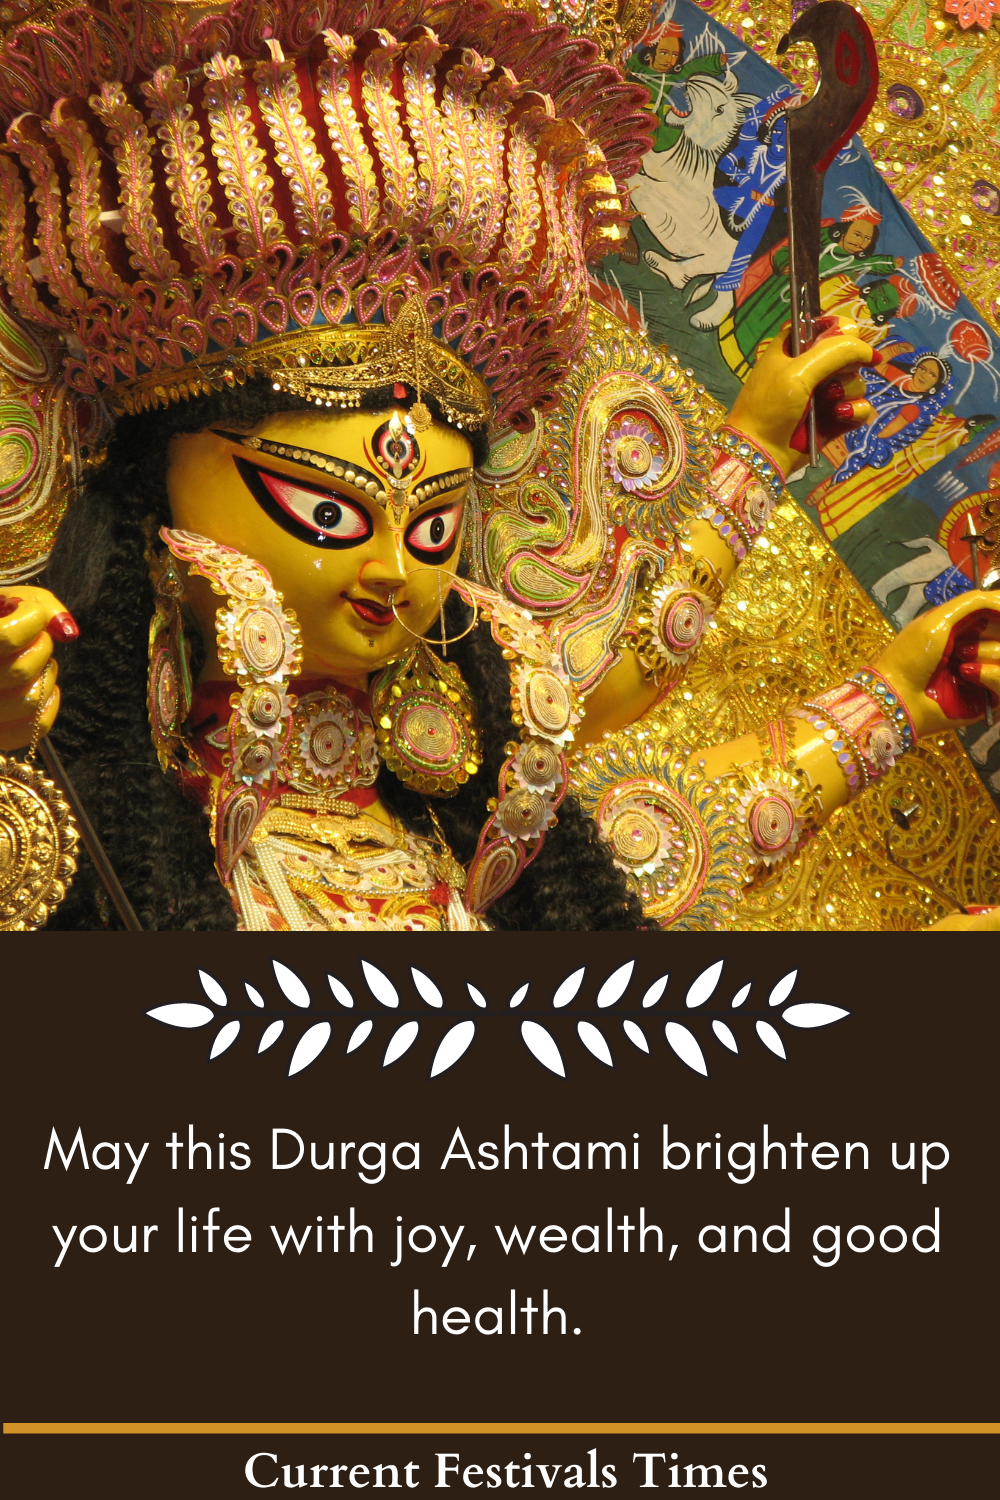 durga ashtami quotes wishes images